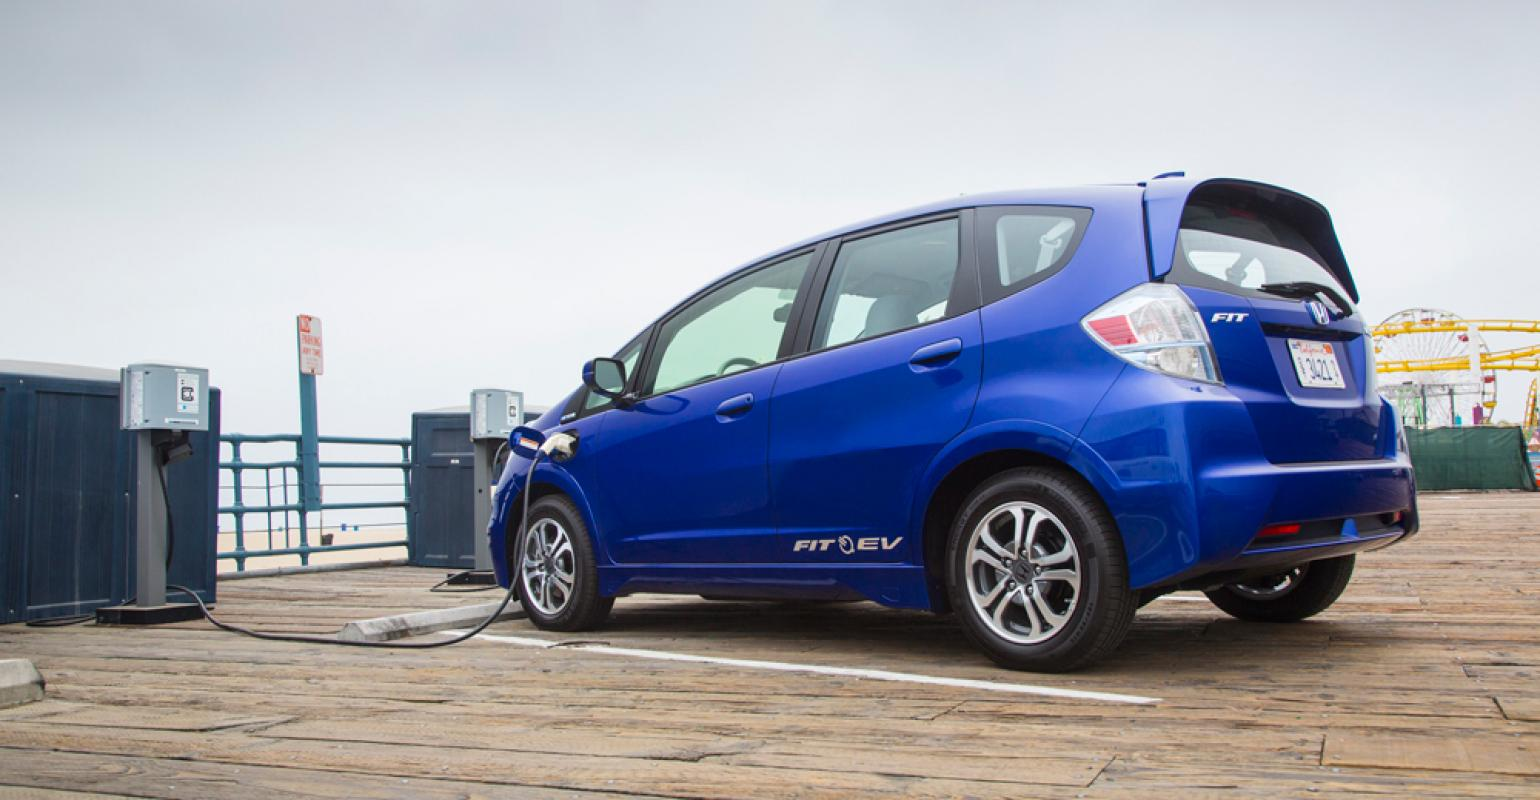 Honda Fit EV Leases For 389 A Month